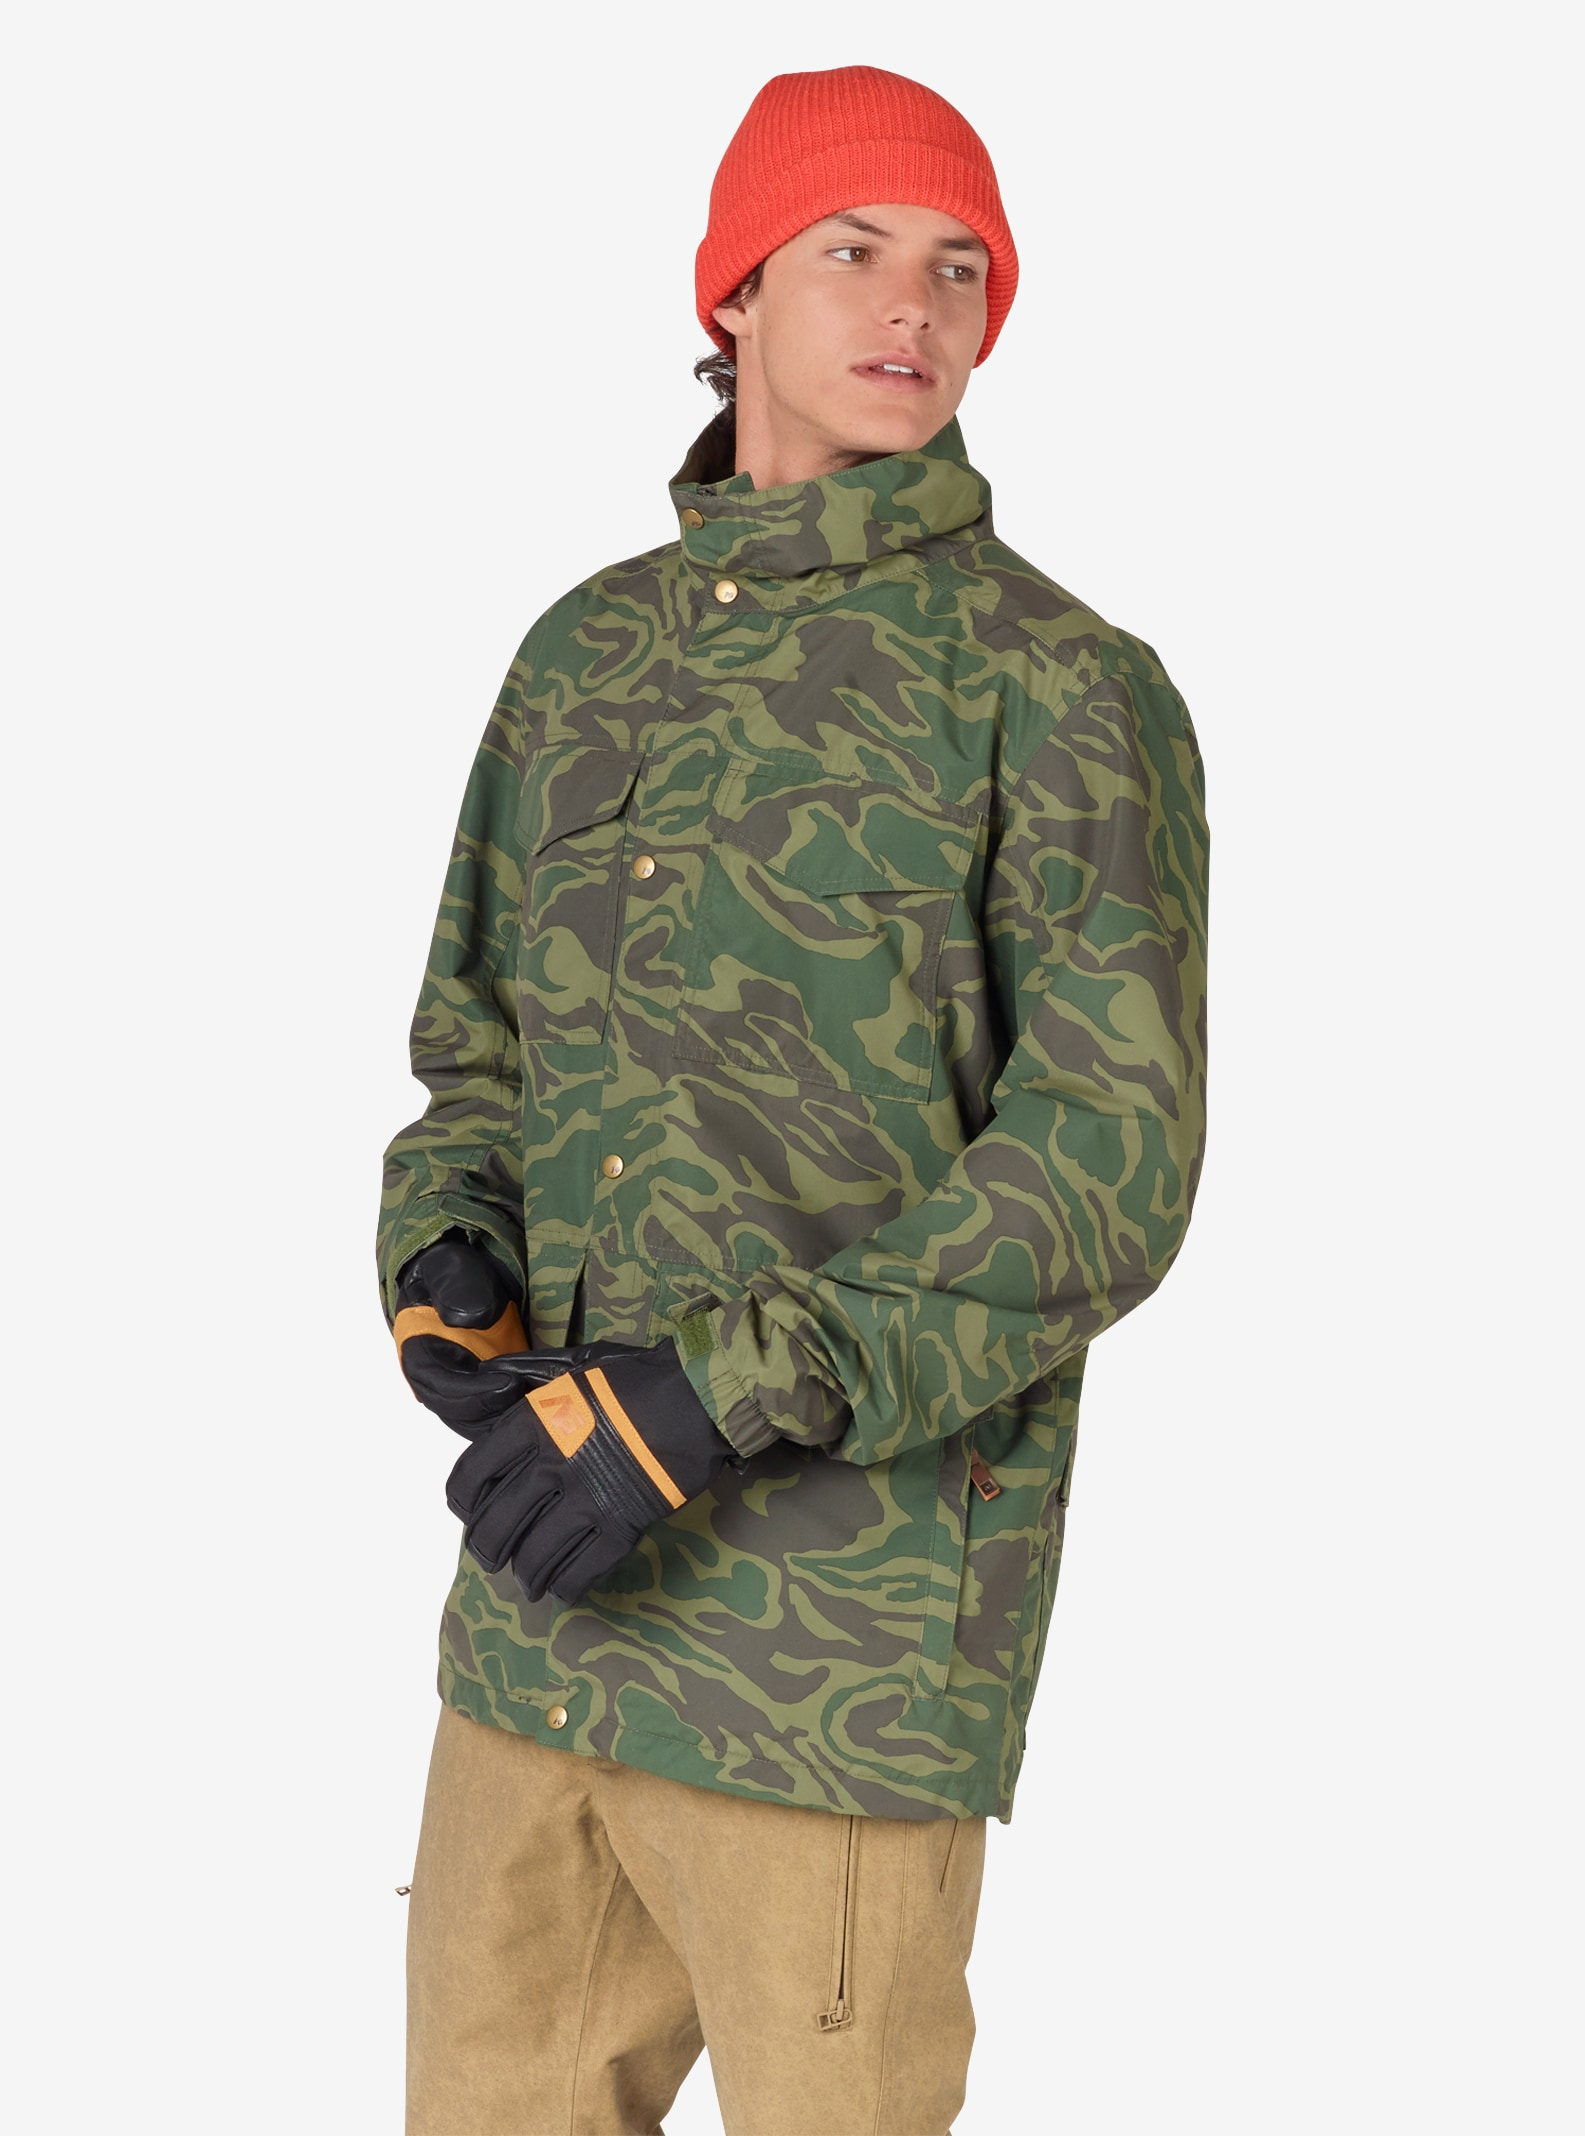 Men's Analog Tollgate Jacket shown in Rifle Green Noodle Camo